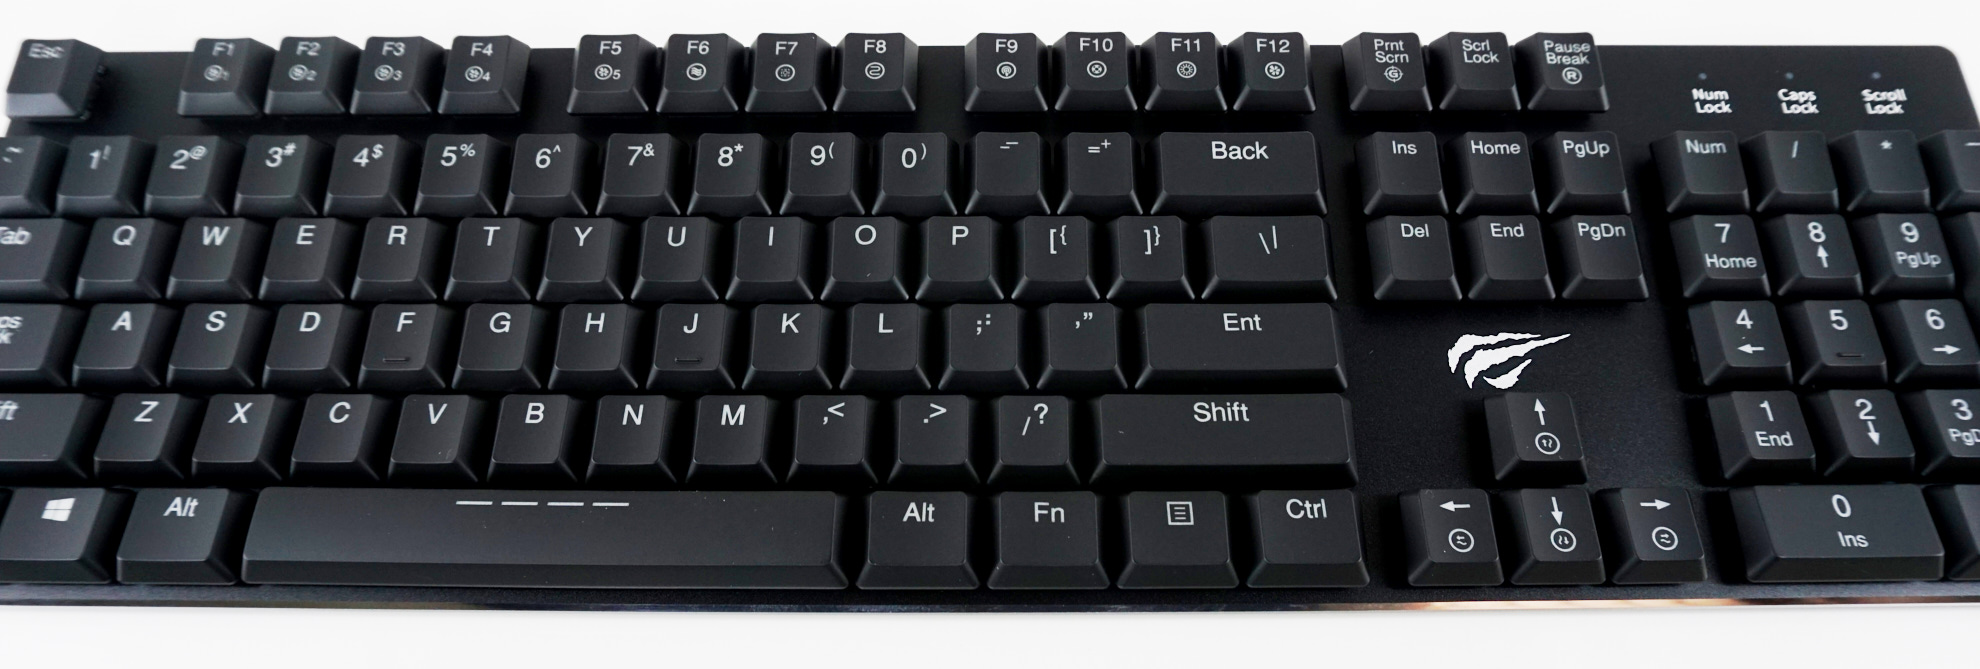 15a3e025794 The very few advanced functions that the keyboard has available by default  are accessible via keystroke combinations using the Fn key.